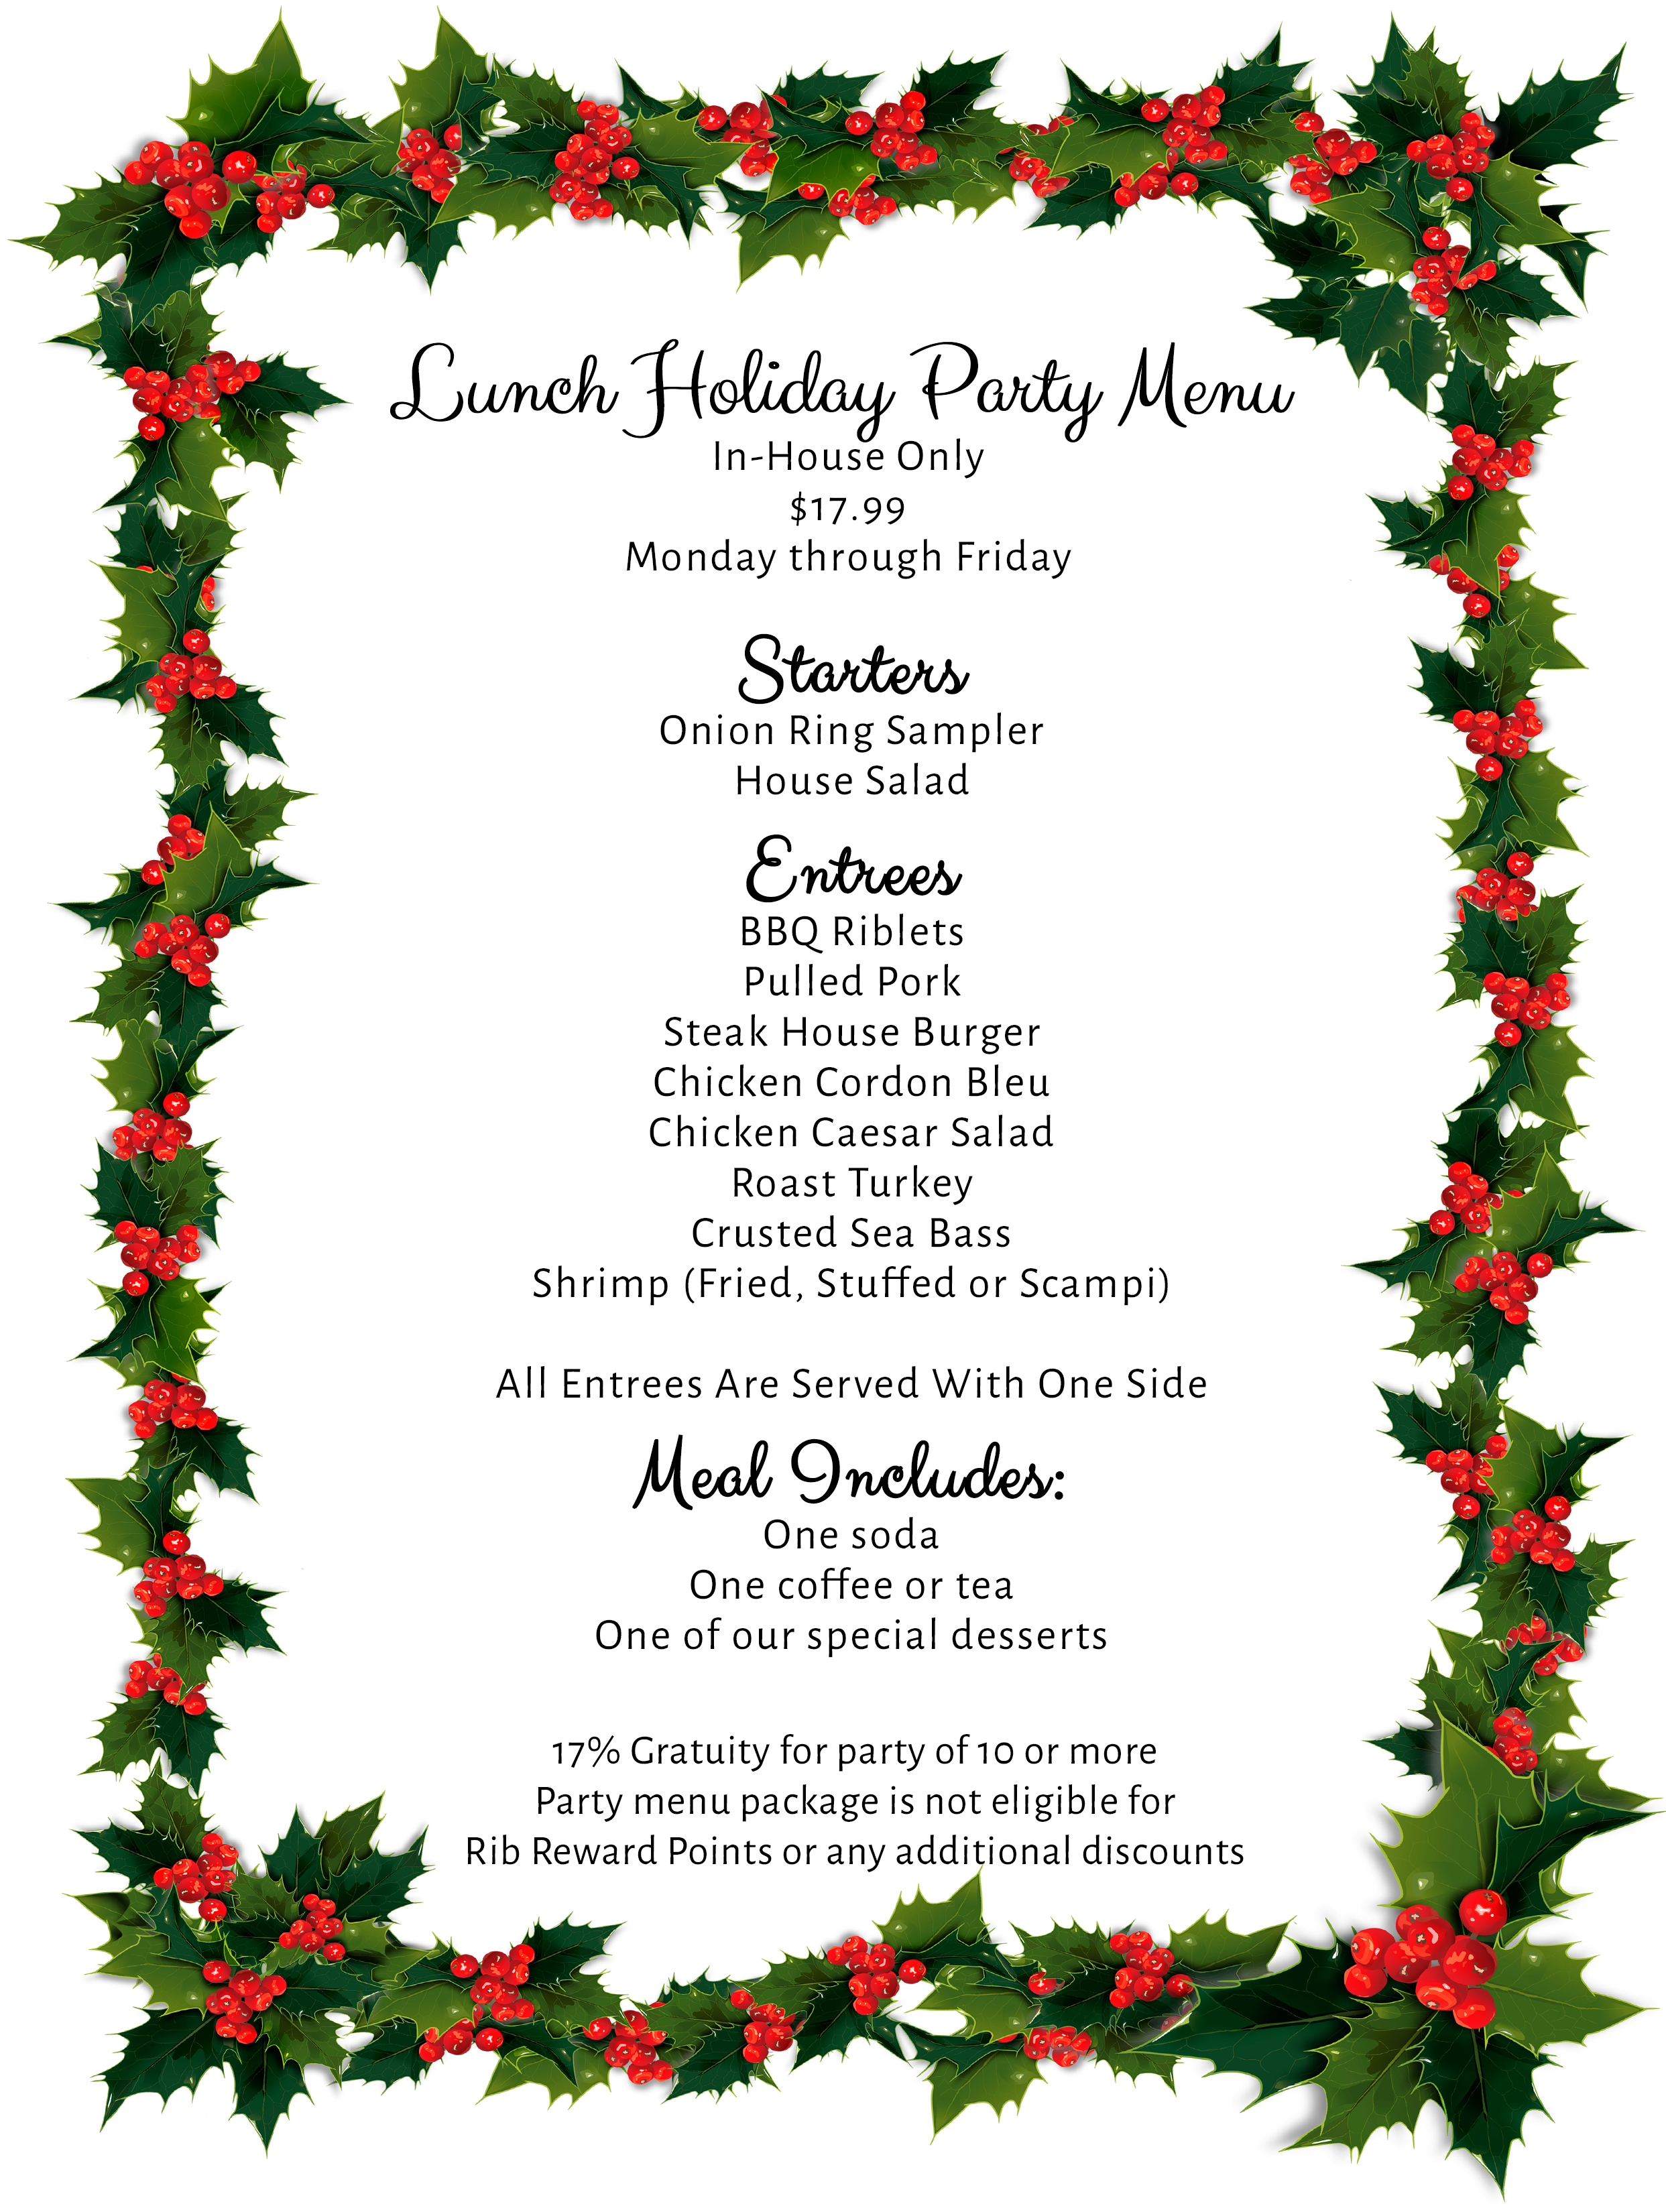 Lunch Holiday Party Menu In-House Only $17.99 Monday through Friday Starters Onion Ring Sampler House Salad  Entrees BBQ Riblets Pulled Pork Steak House Burger Chicken Cordon Bleu Chicken Caesar Salad Roast Turkey Crusted Sea Bass Shrimp (Fried, Stuffed or Scampi)  All Entrees Are Served With One Side  Meal Includes: One soda  One coffee or tea One of our special desserts   17% Gratuity for party of 10 or more Party menu package is not eligible for  Rib Reward Points or any additional discounts